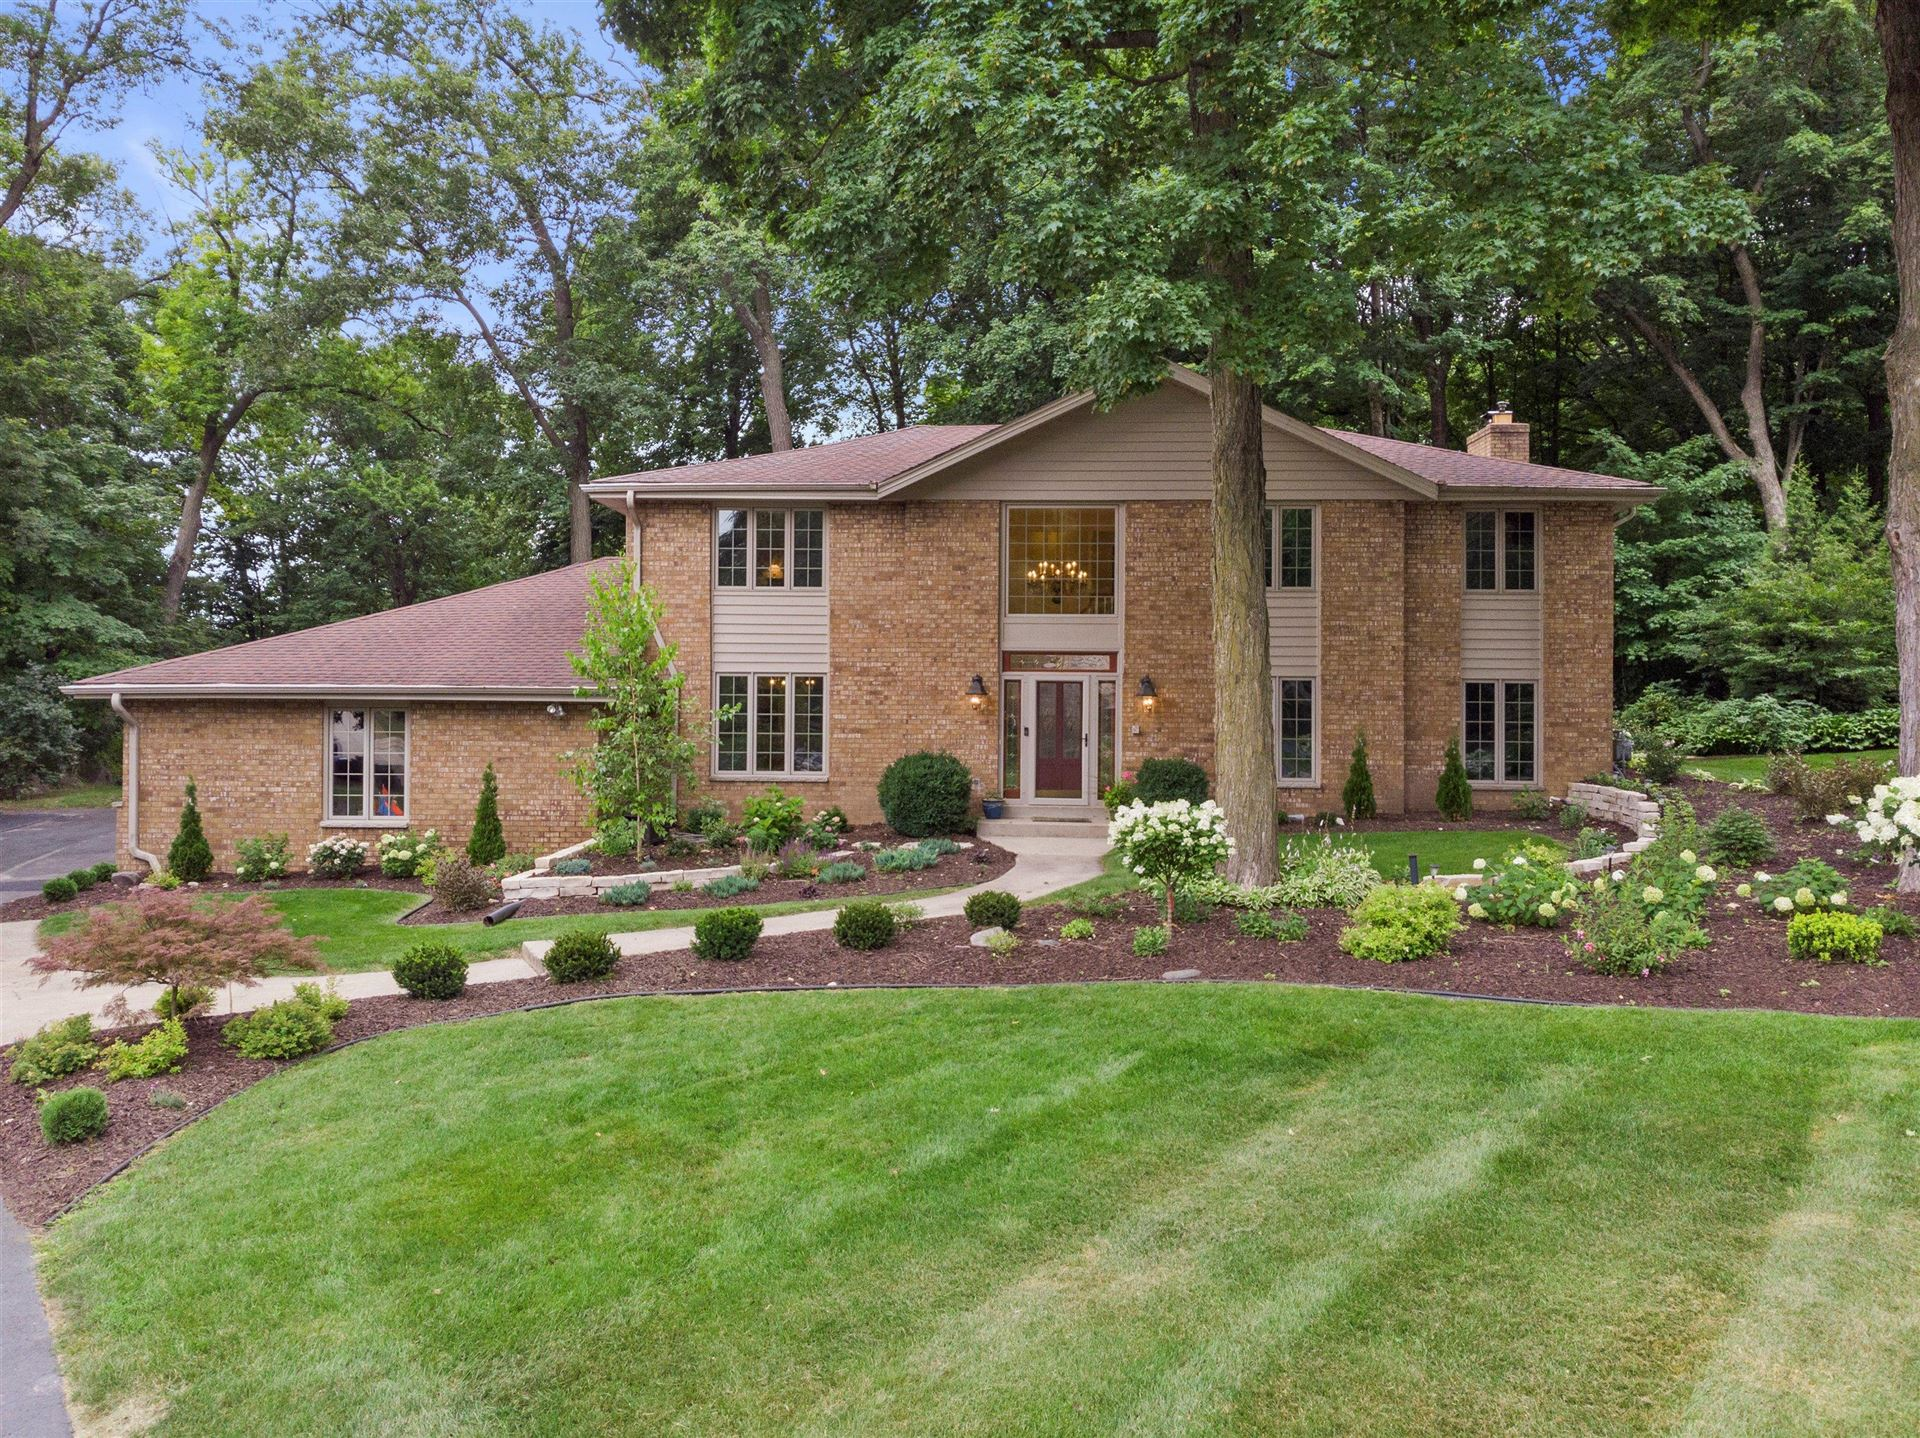 18285 Le Chateau Dr, Brookfield, WI 53045 - MLS#: 1754372